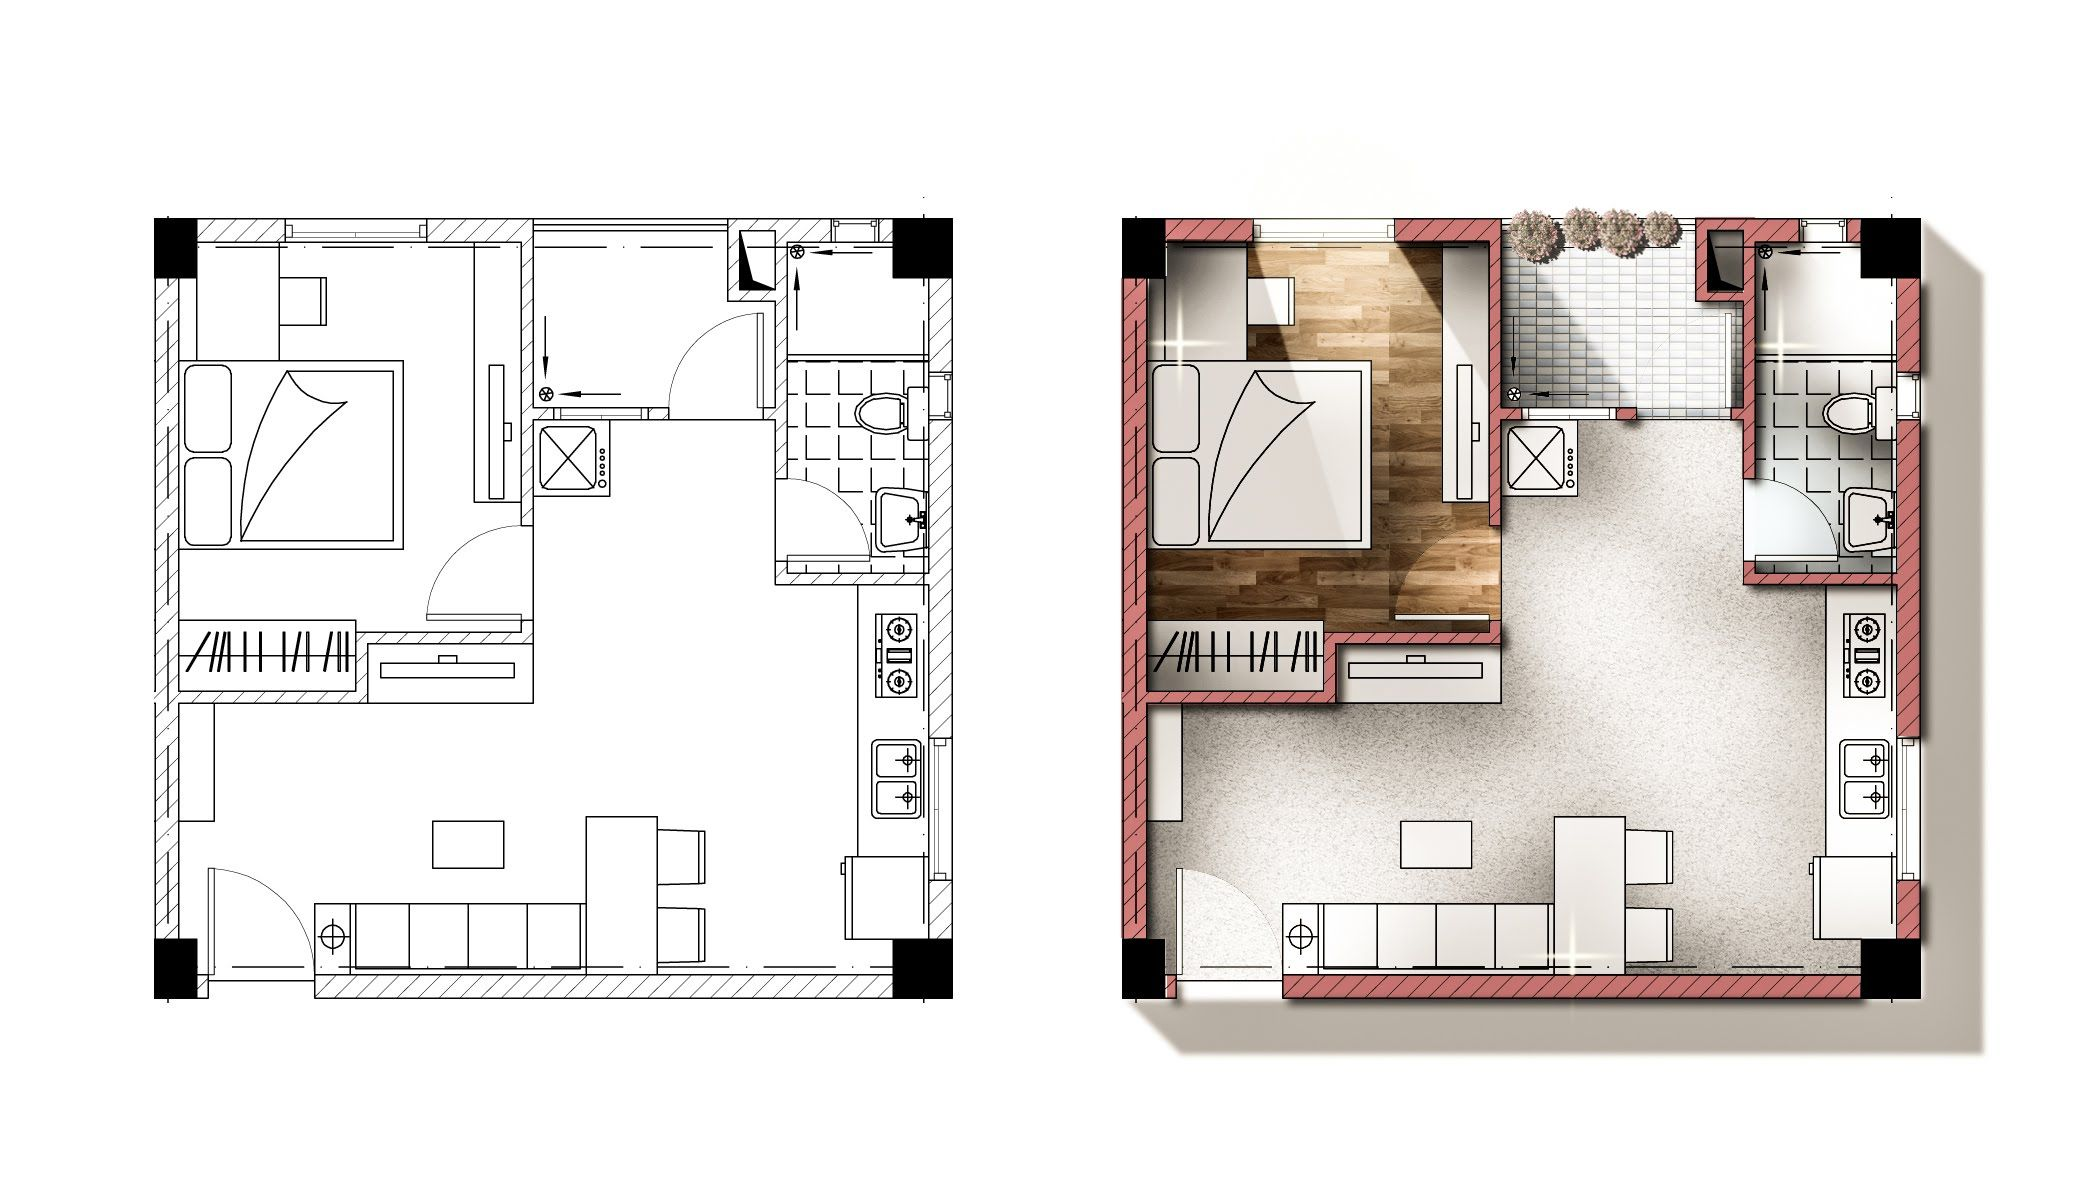 Architecture Plan Render By Photoshop Autocad Plans